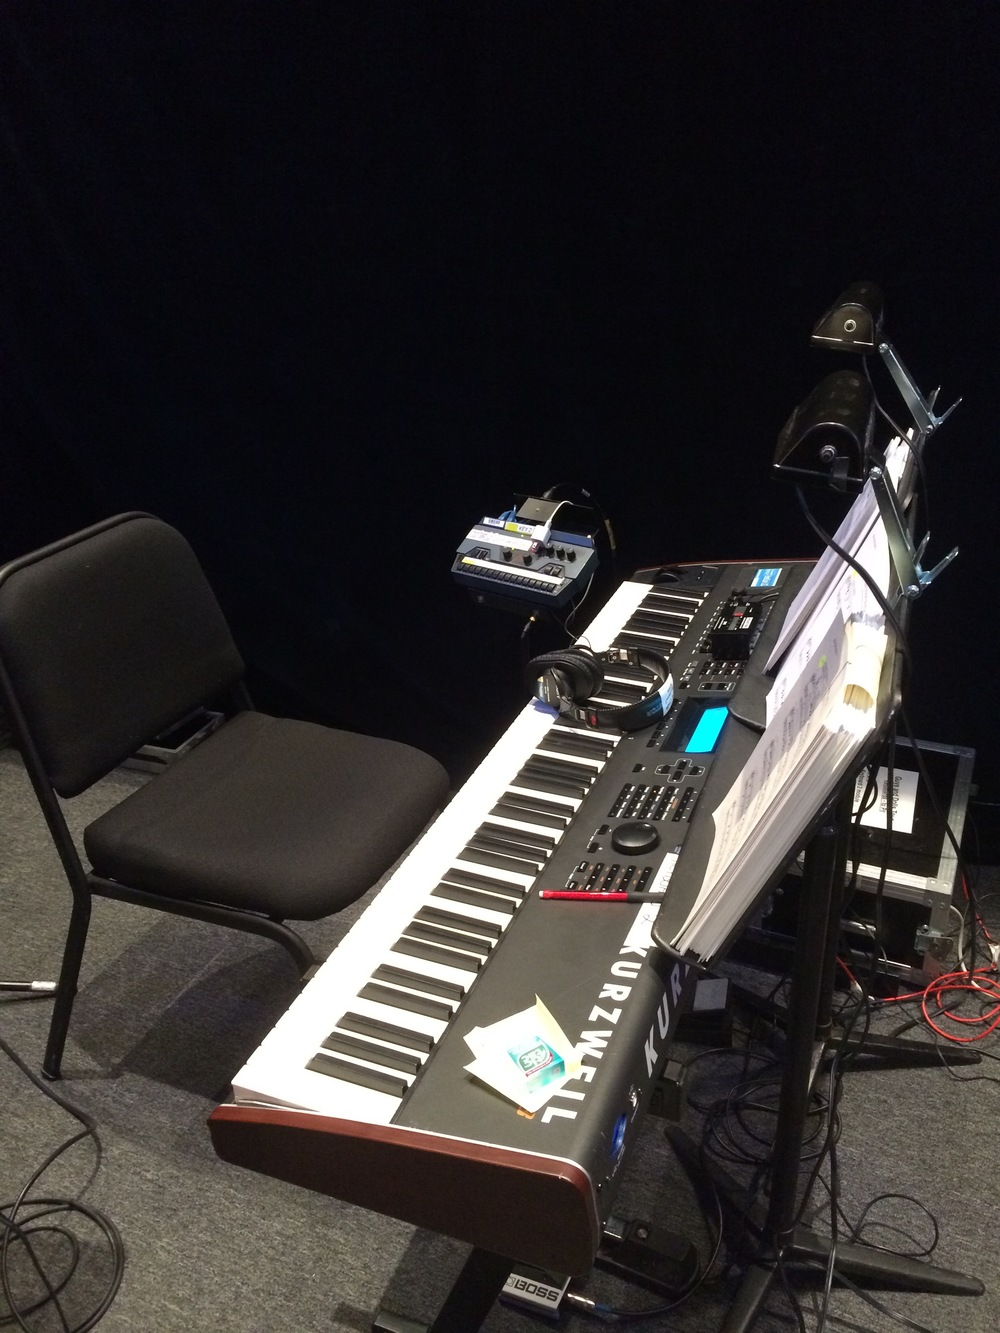 12-26-14 [Naples] - My New and Improved Keyboard 2 Rig.jpg